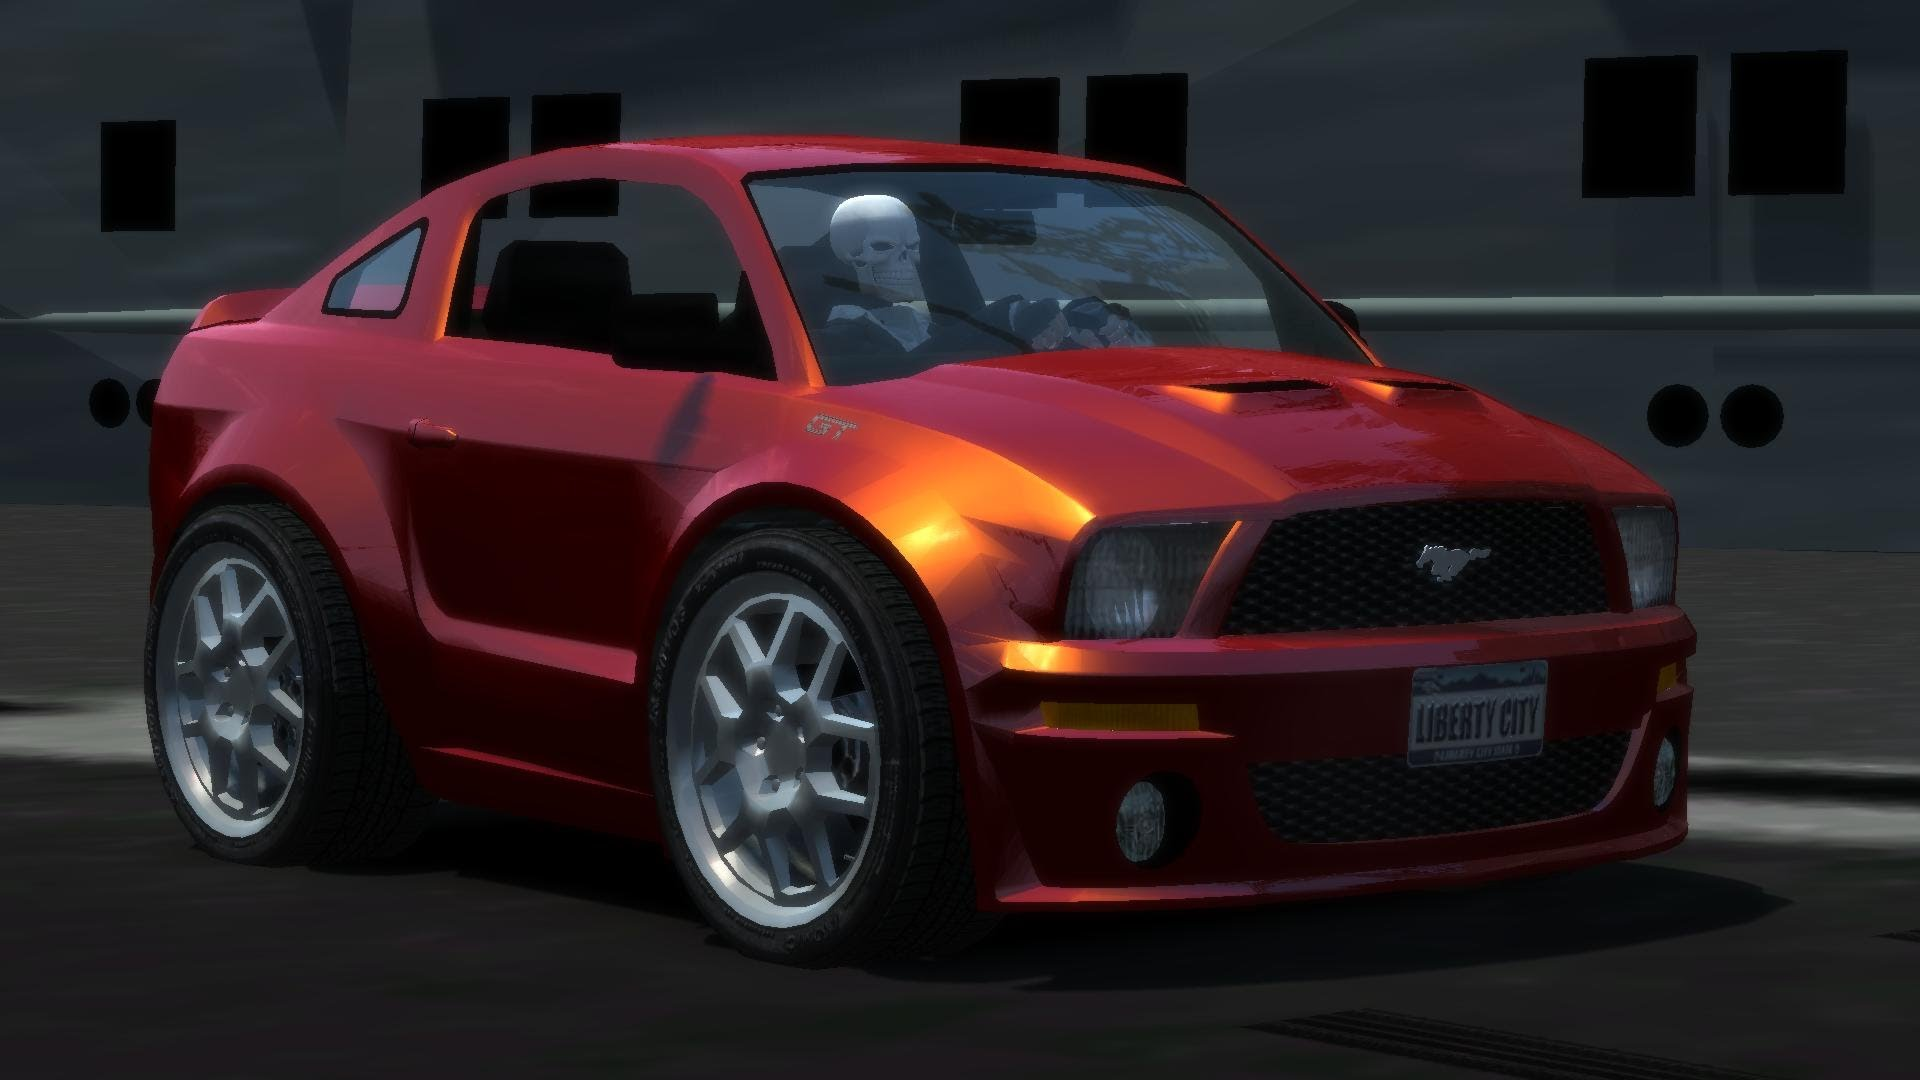 GTA IV Mini Ford Mustang GT Mod Hot Wheels Car Town Crash Testing HD